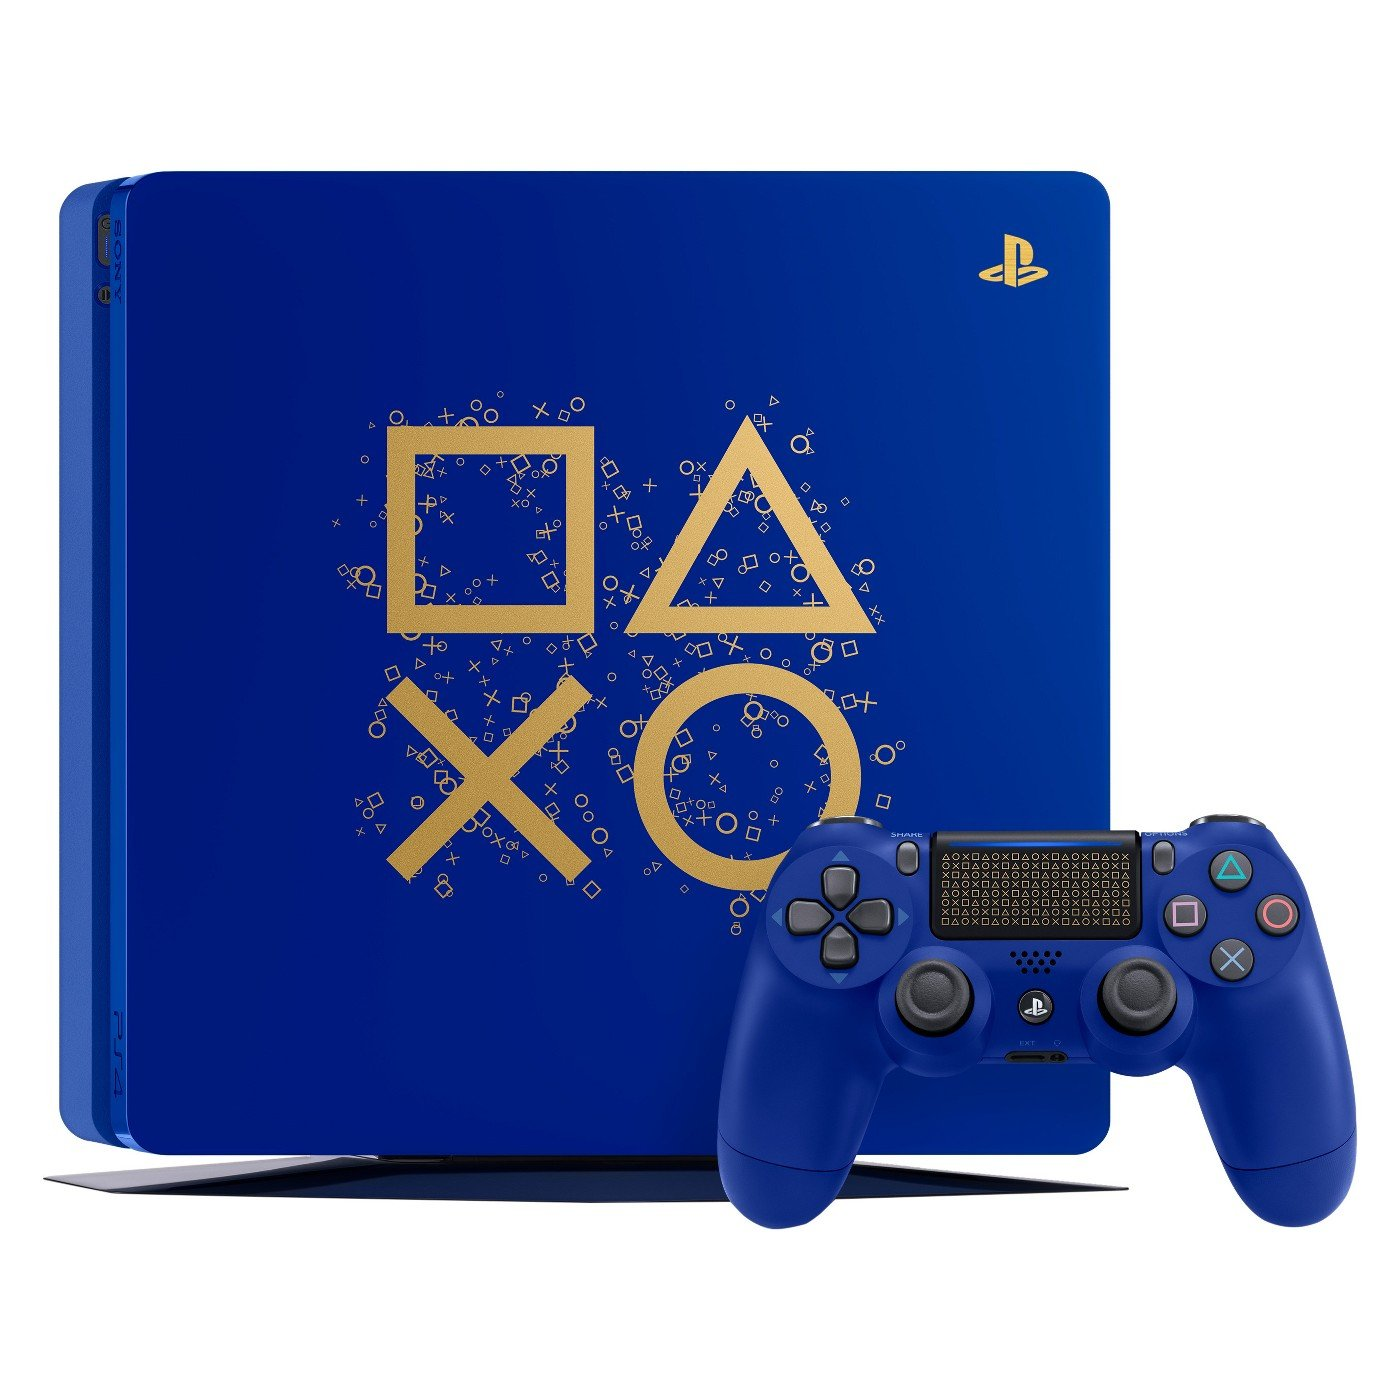 PlayStation 4 Slim 1TB Limited Edition Console